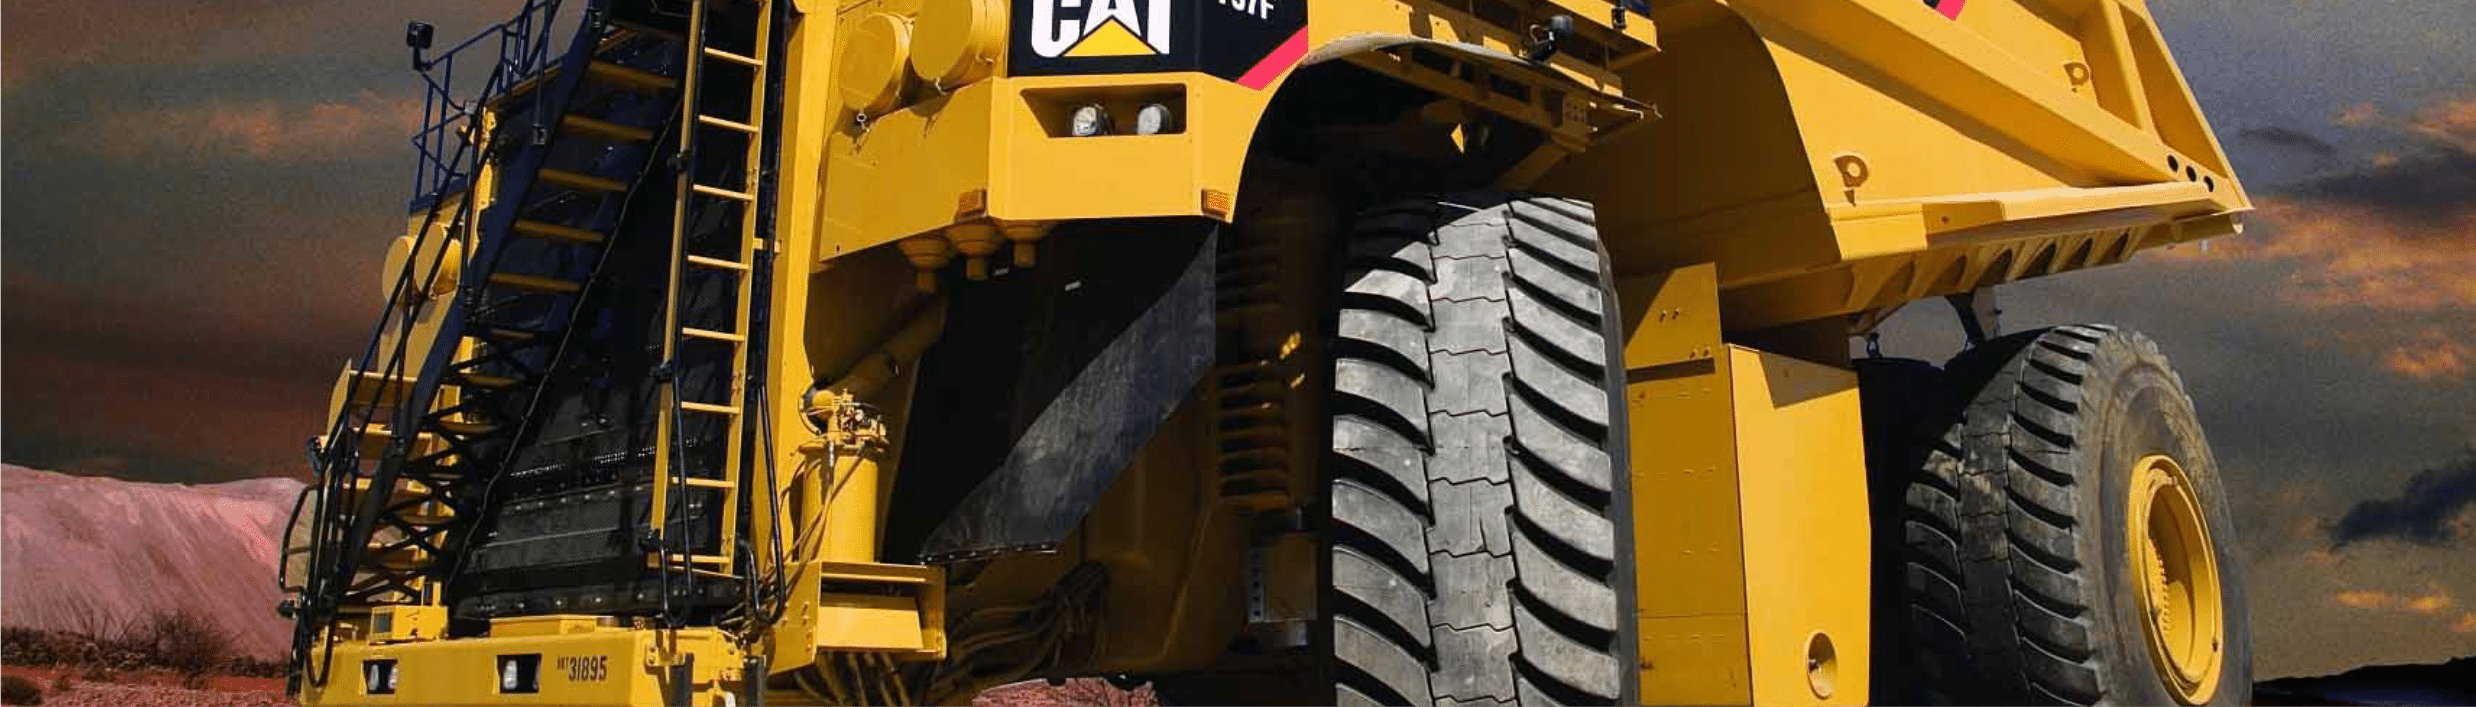 Cat Earthmoving